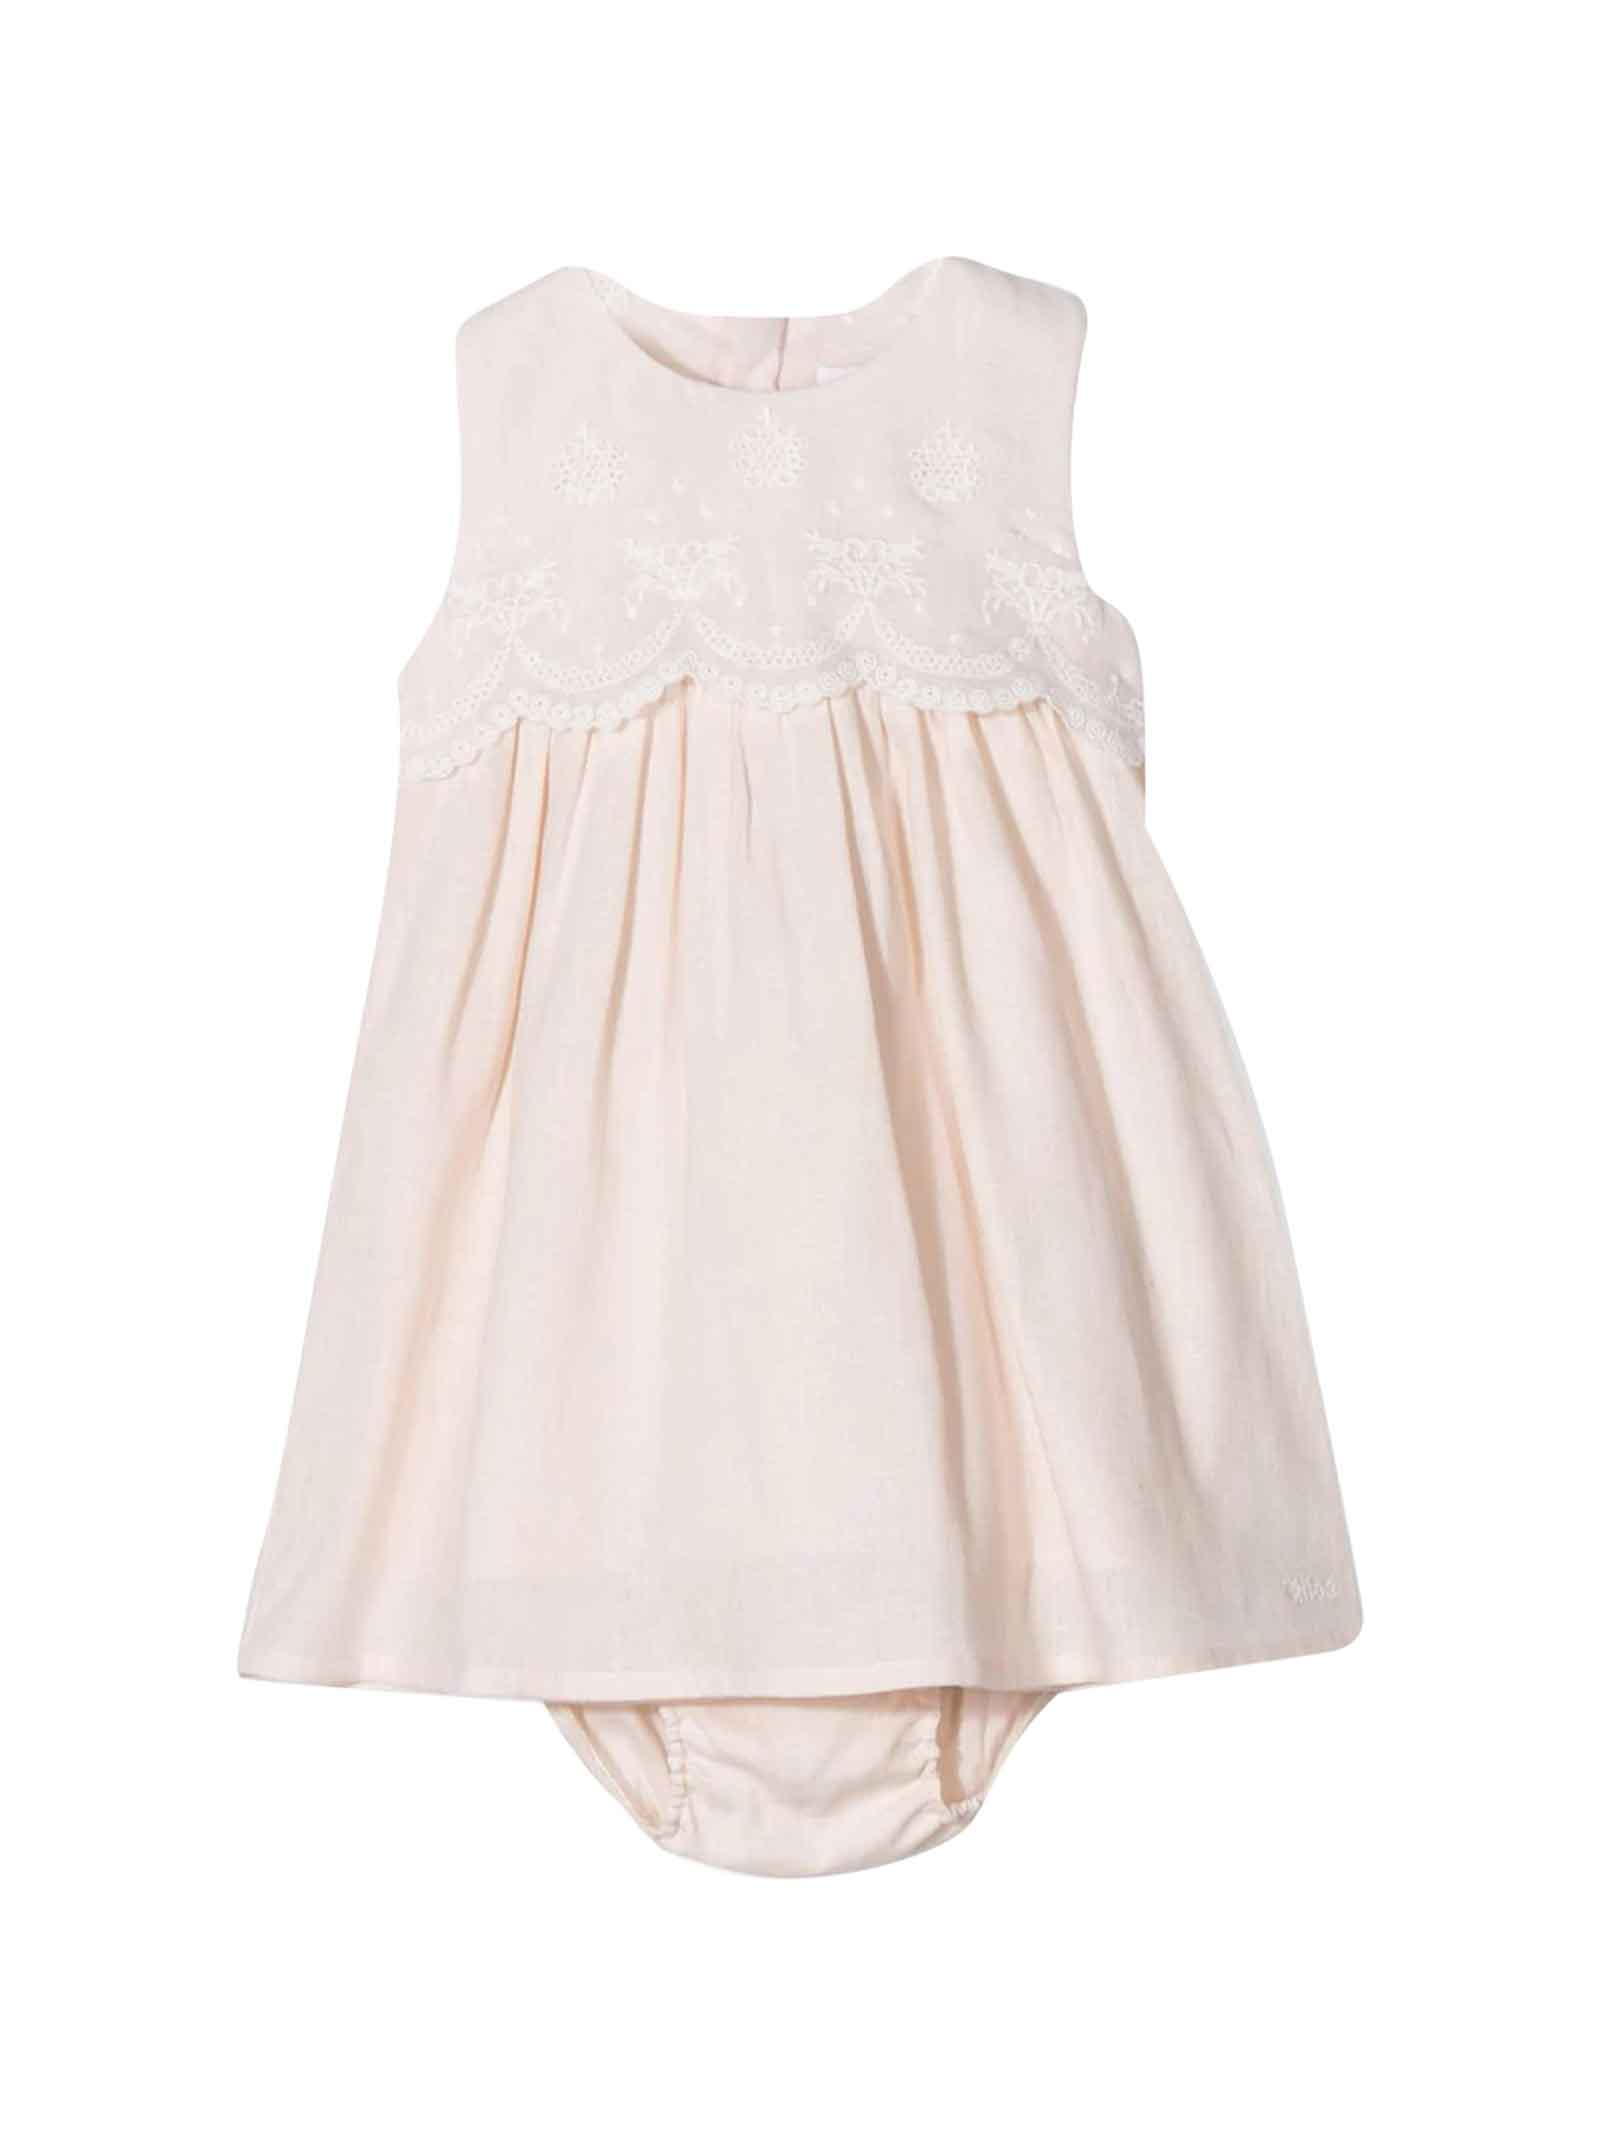 Buy Chloé Pink Baby Dress With Embroidery Chloé Kids online, shop Chloé with free shipping